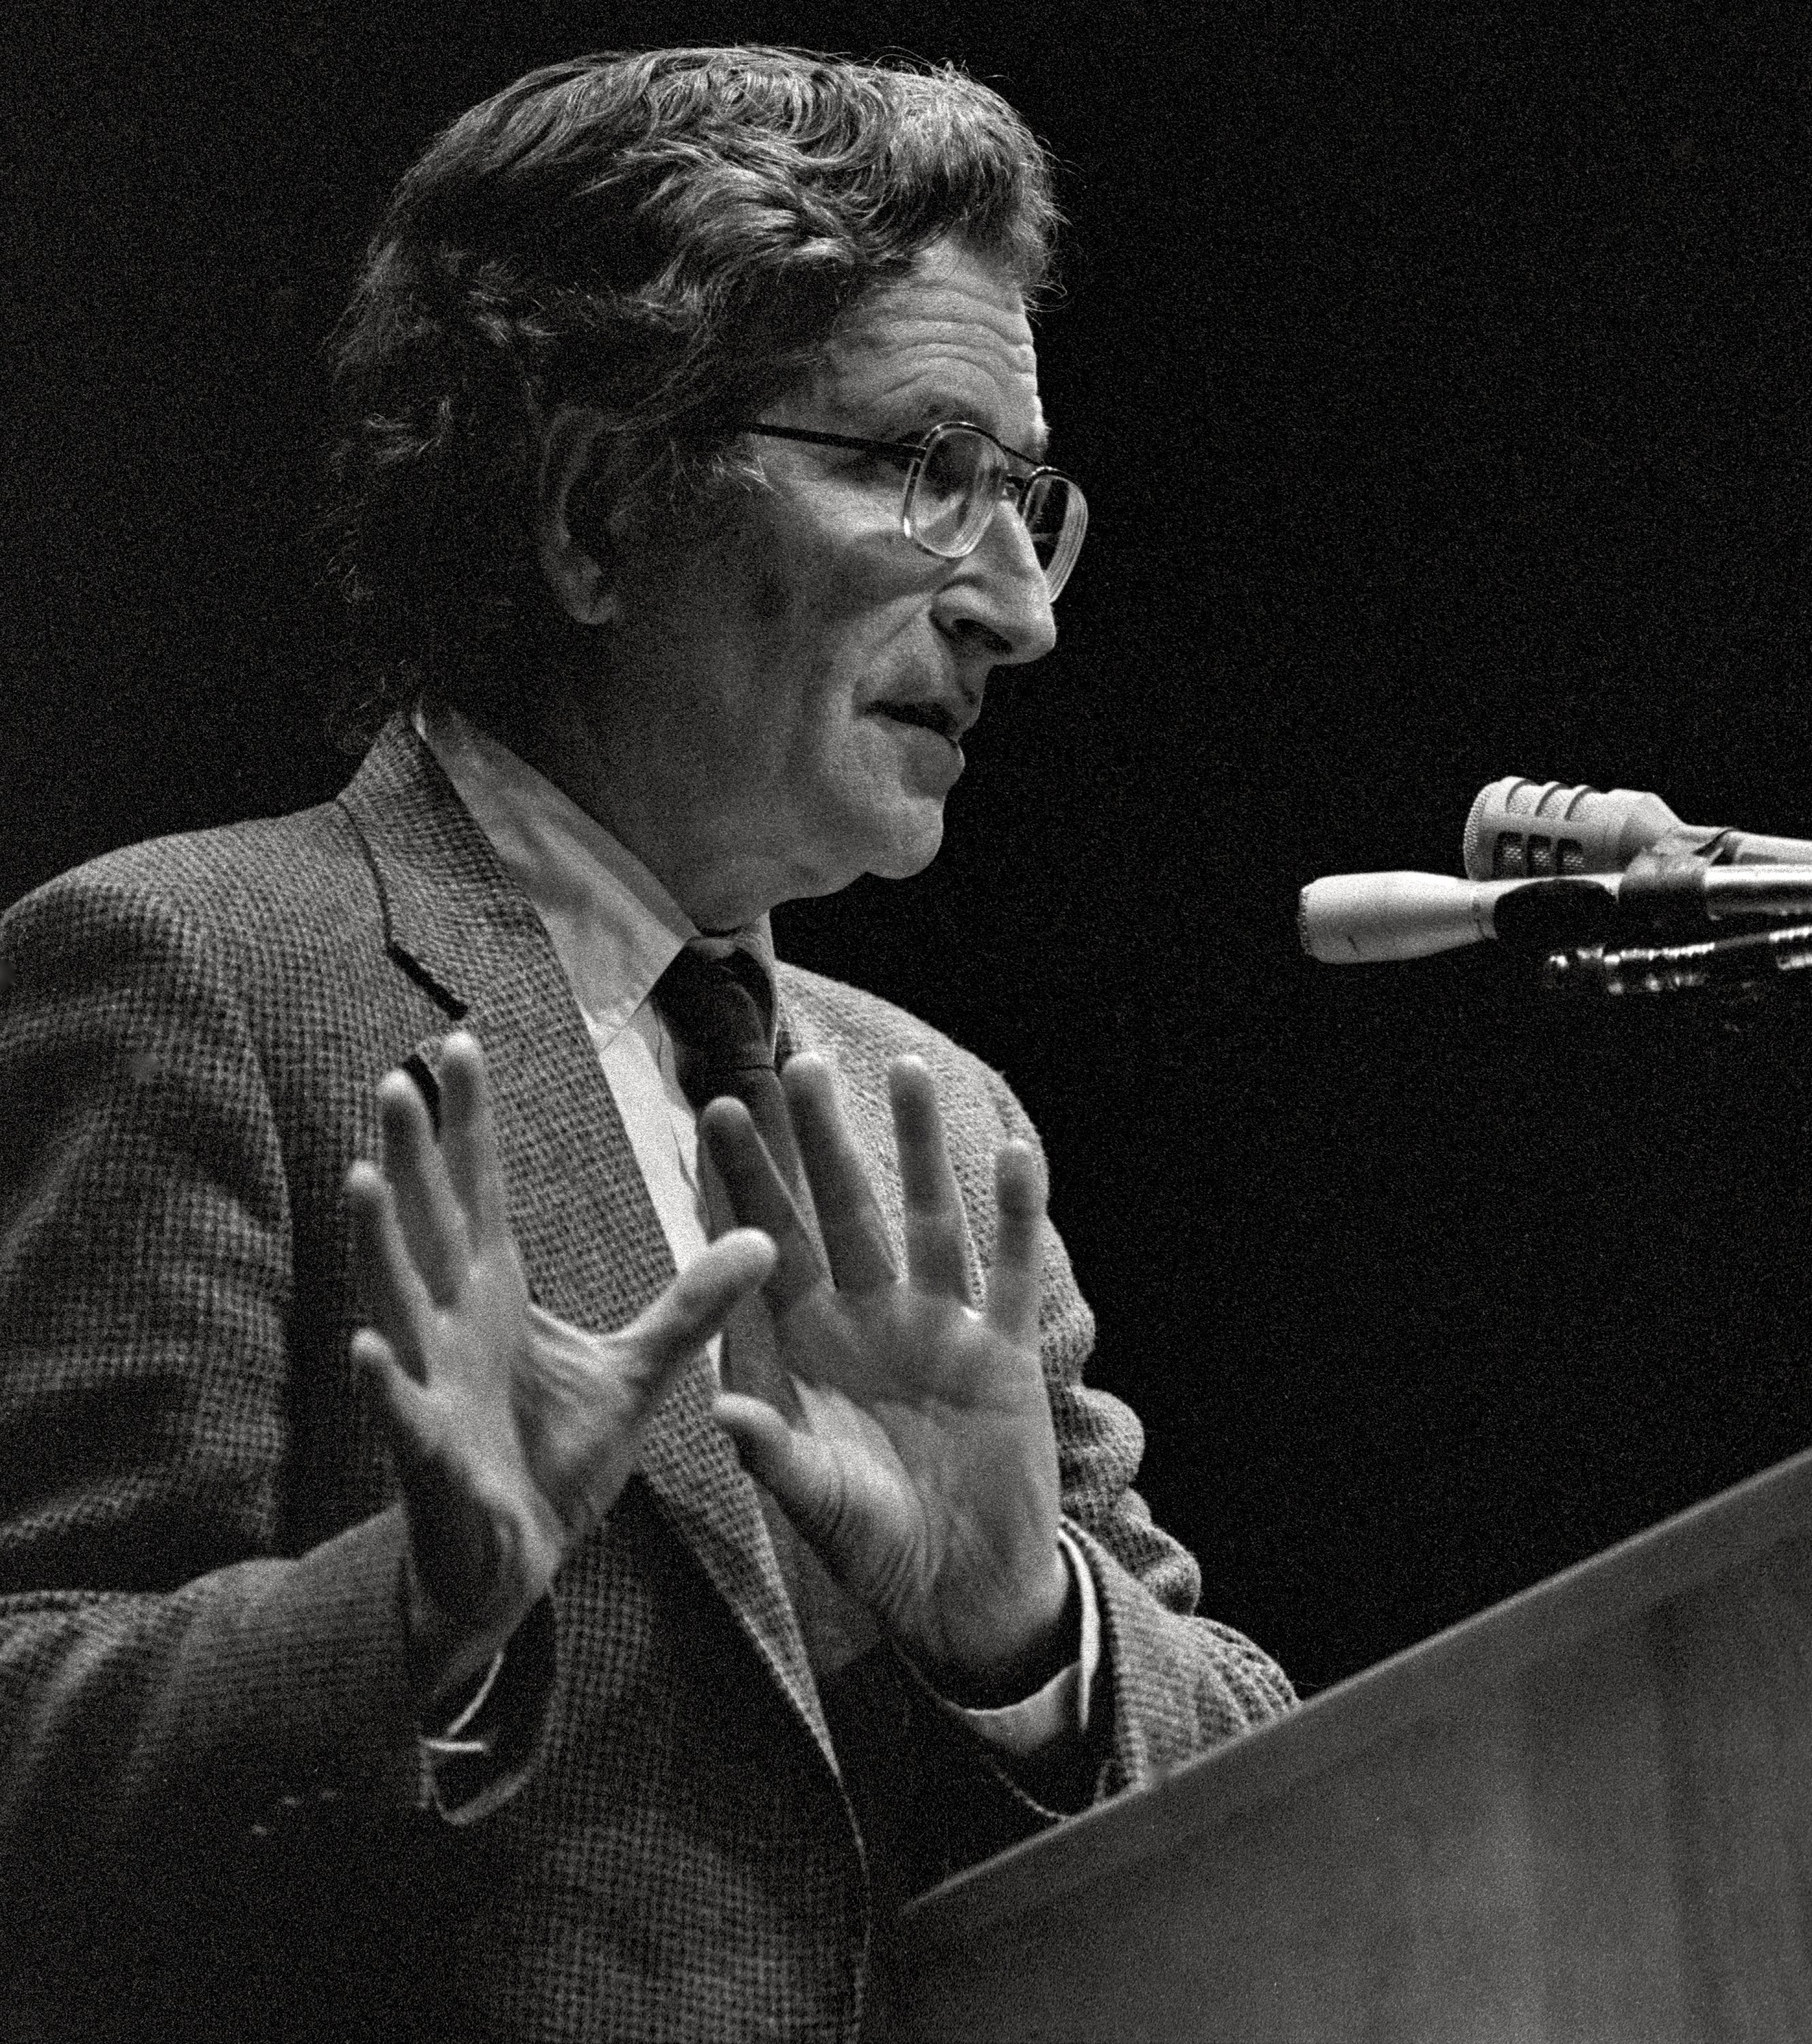 Noam Chomsky lectures at the University of Wyoming Arts & Sciences Auditorium, in Laramie, Wyoming, U.S., Feb. 20, 1989. (Photo by Getty Images)